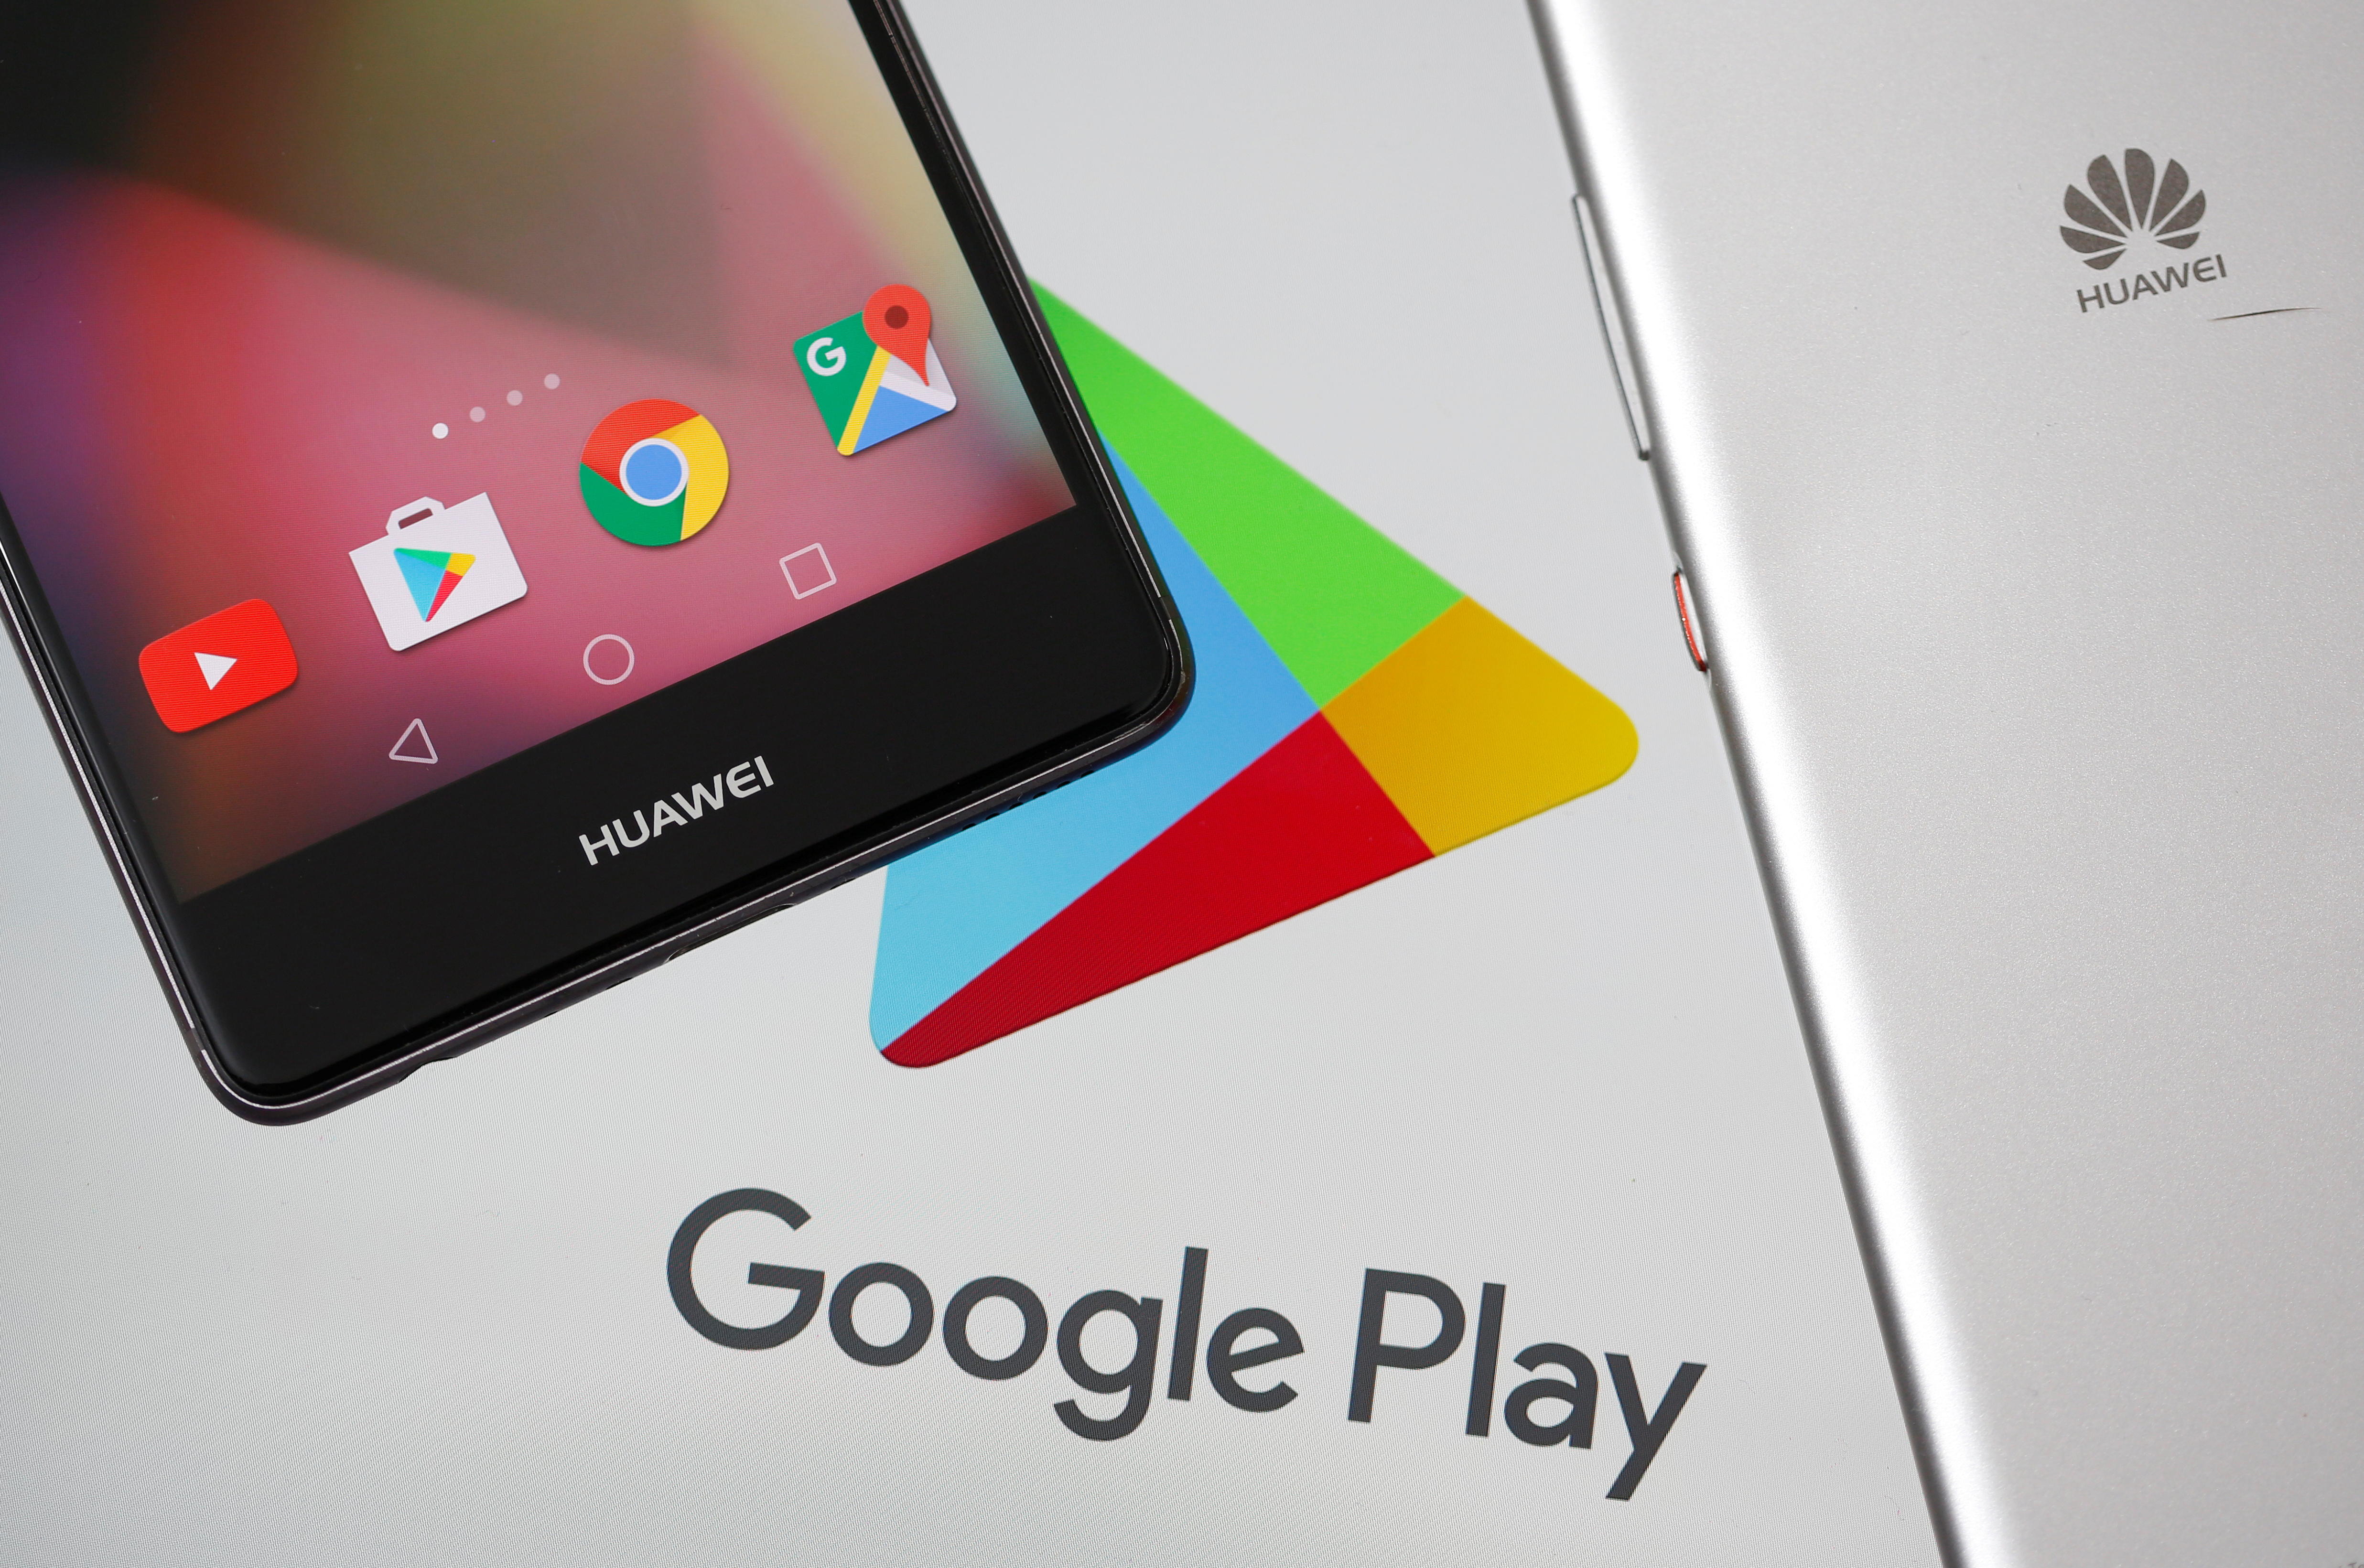 Huawei smartphones are seen in front of displayed Google Play logo in this illustration picture taken May 20, 2019. REUTERS/Dado Ruvic/Illustration